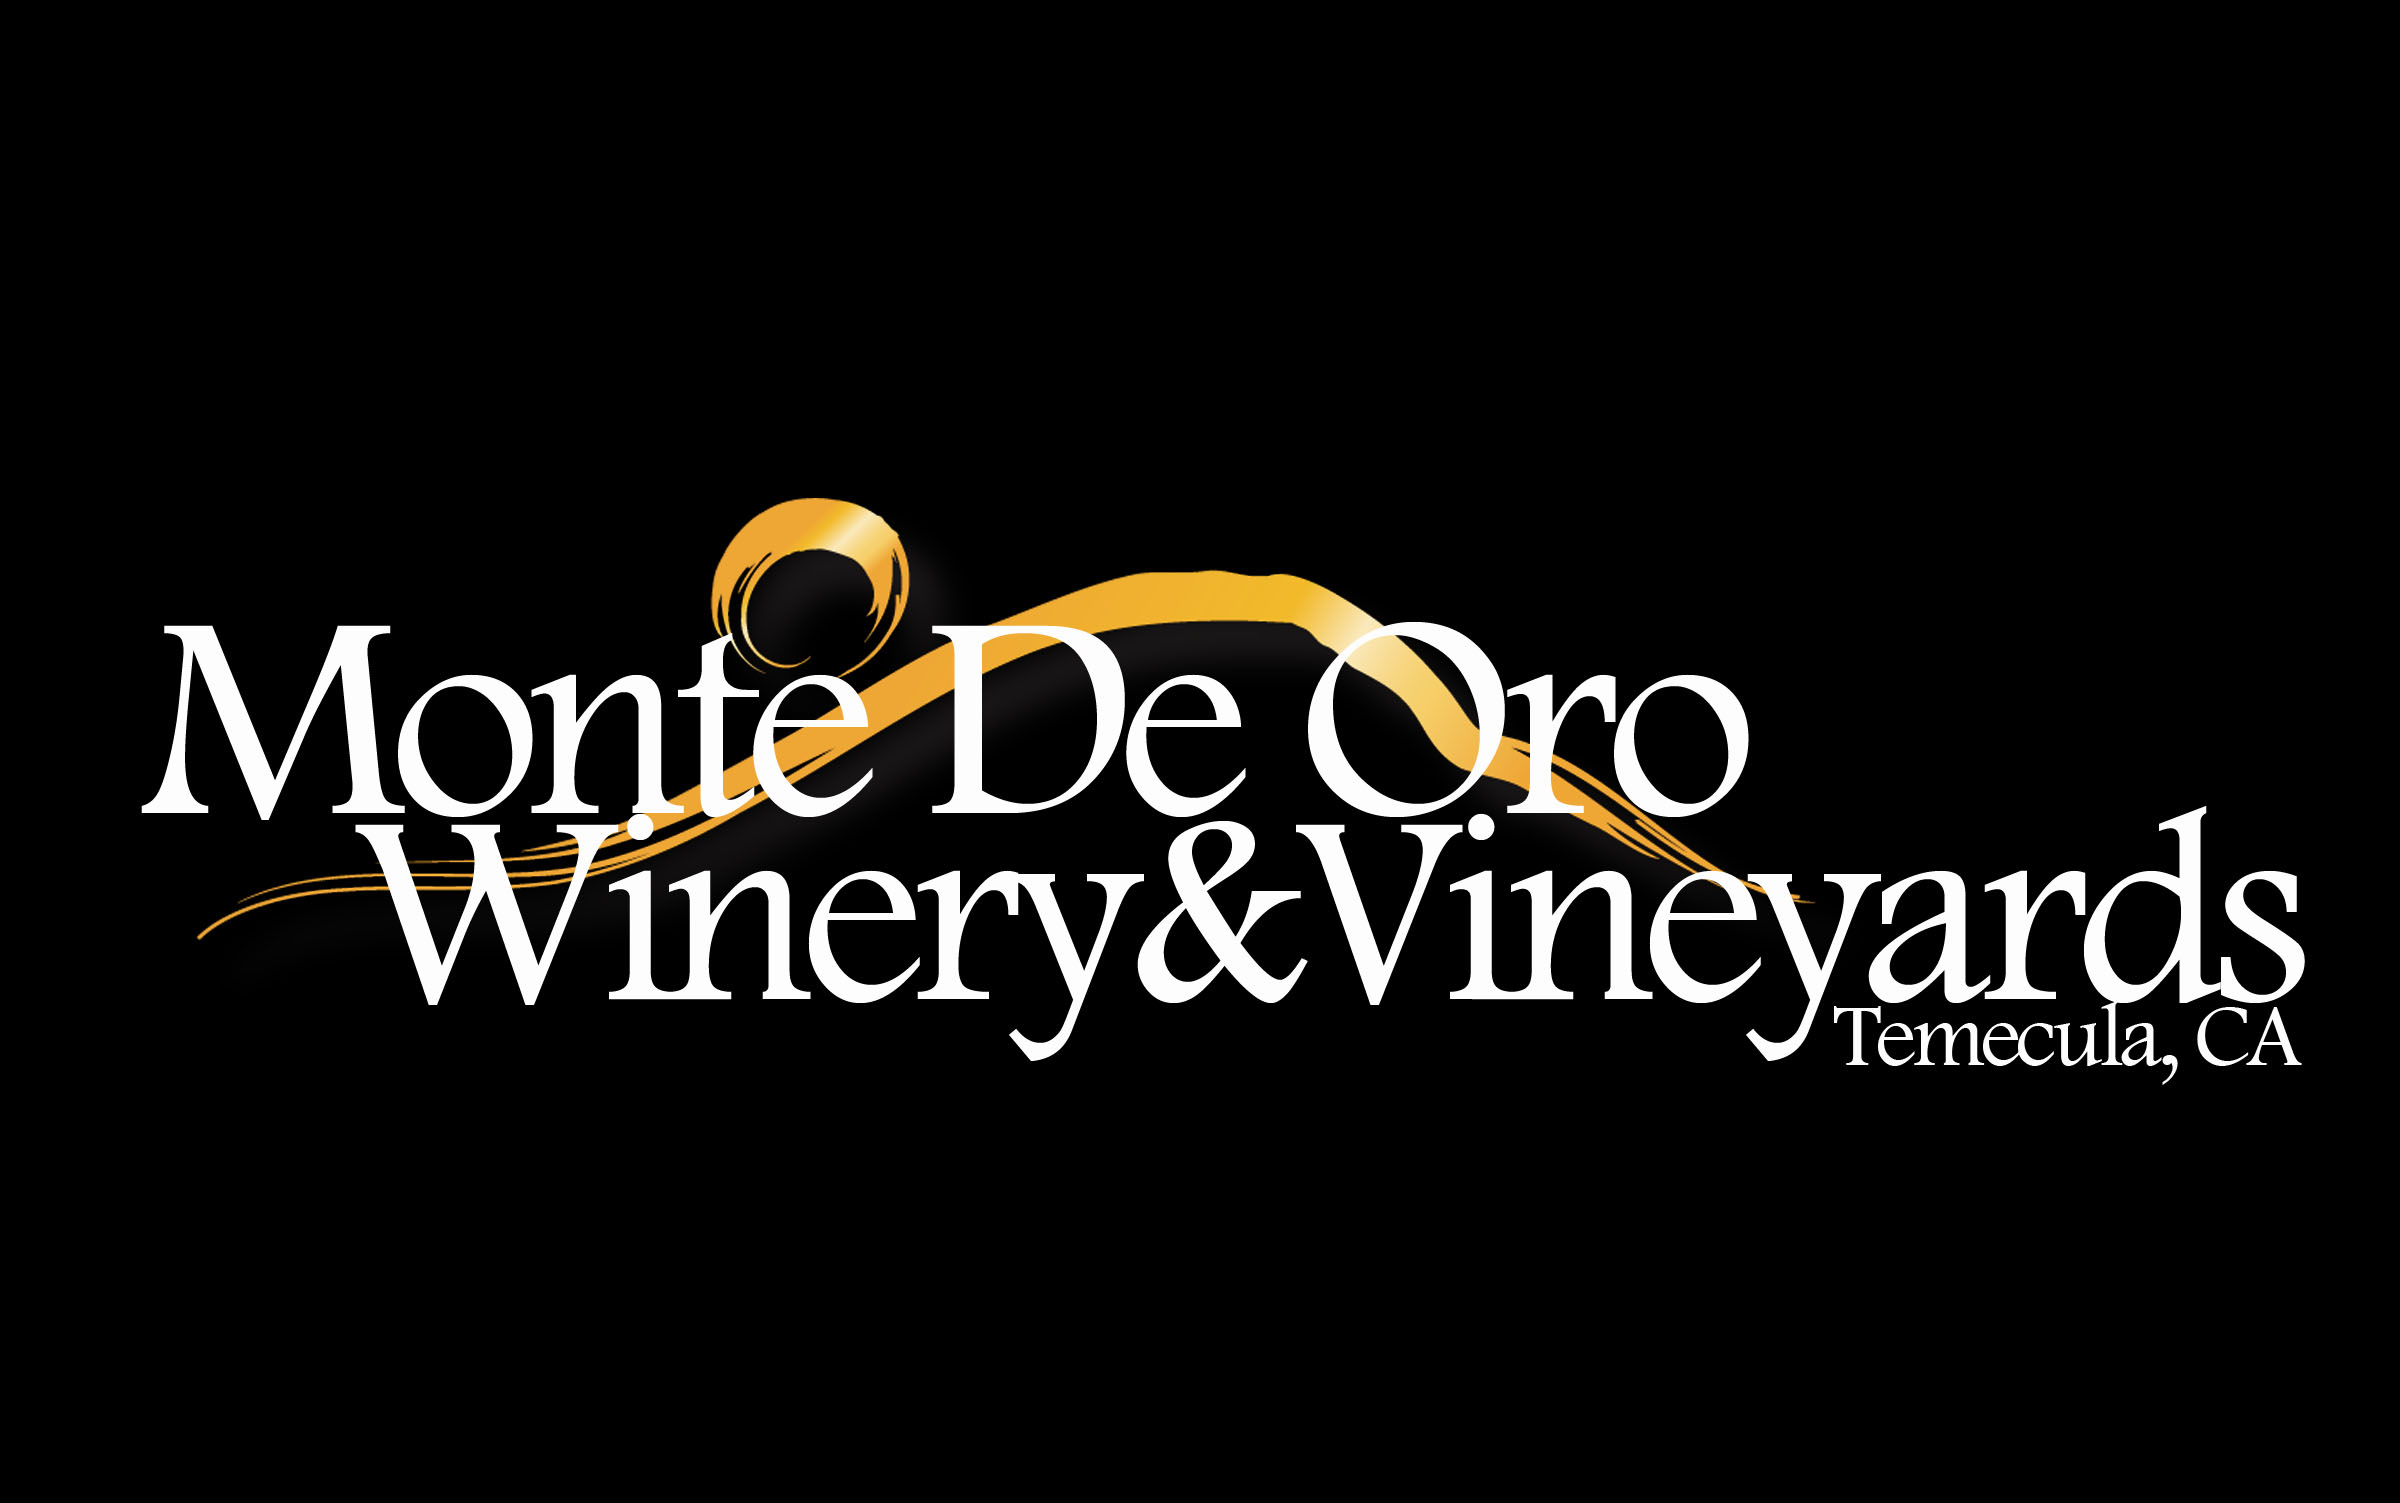 Monte De Oro Winery & Vineyard